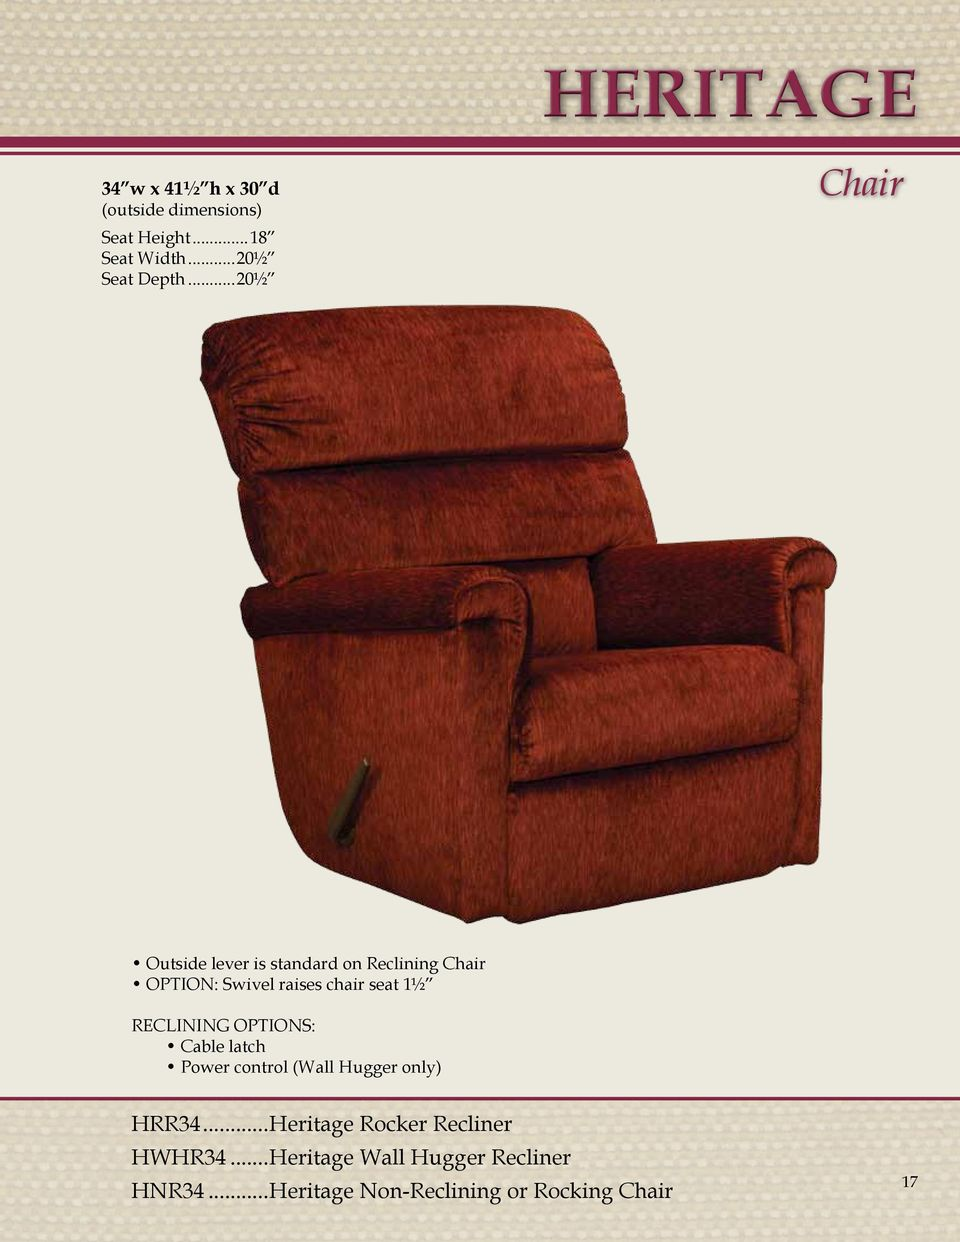 chair seat 1½ RECLINING OPTIONS: Cable latch Power control (Wall Hugger only)